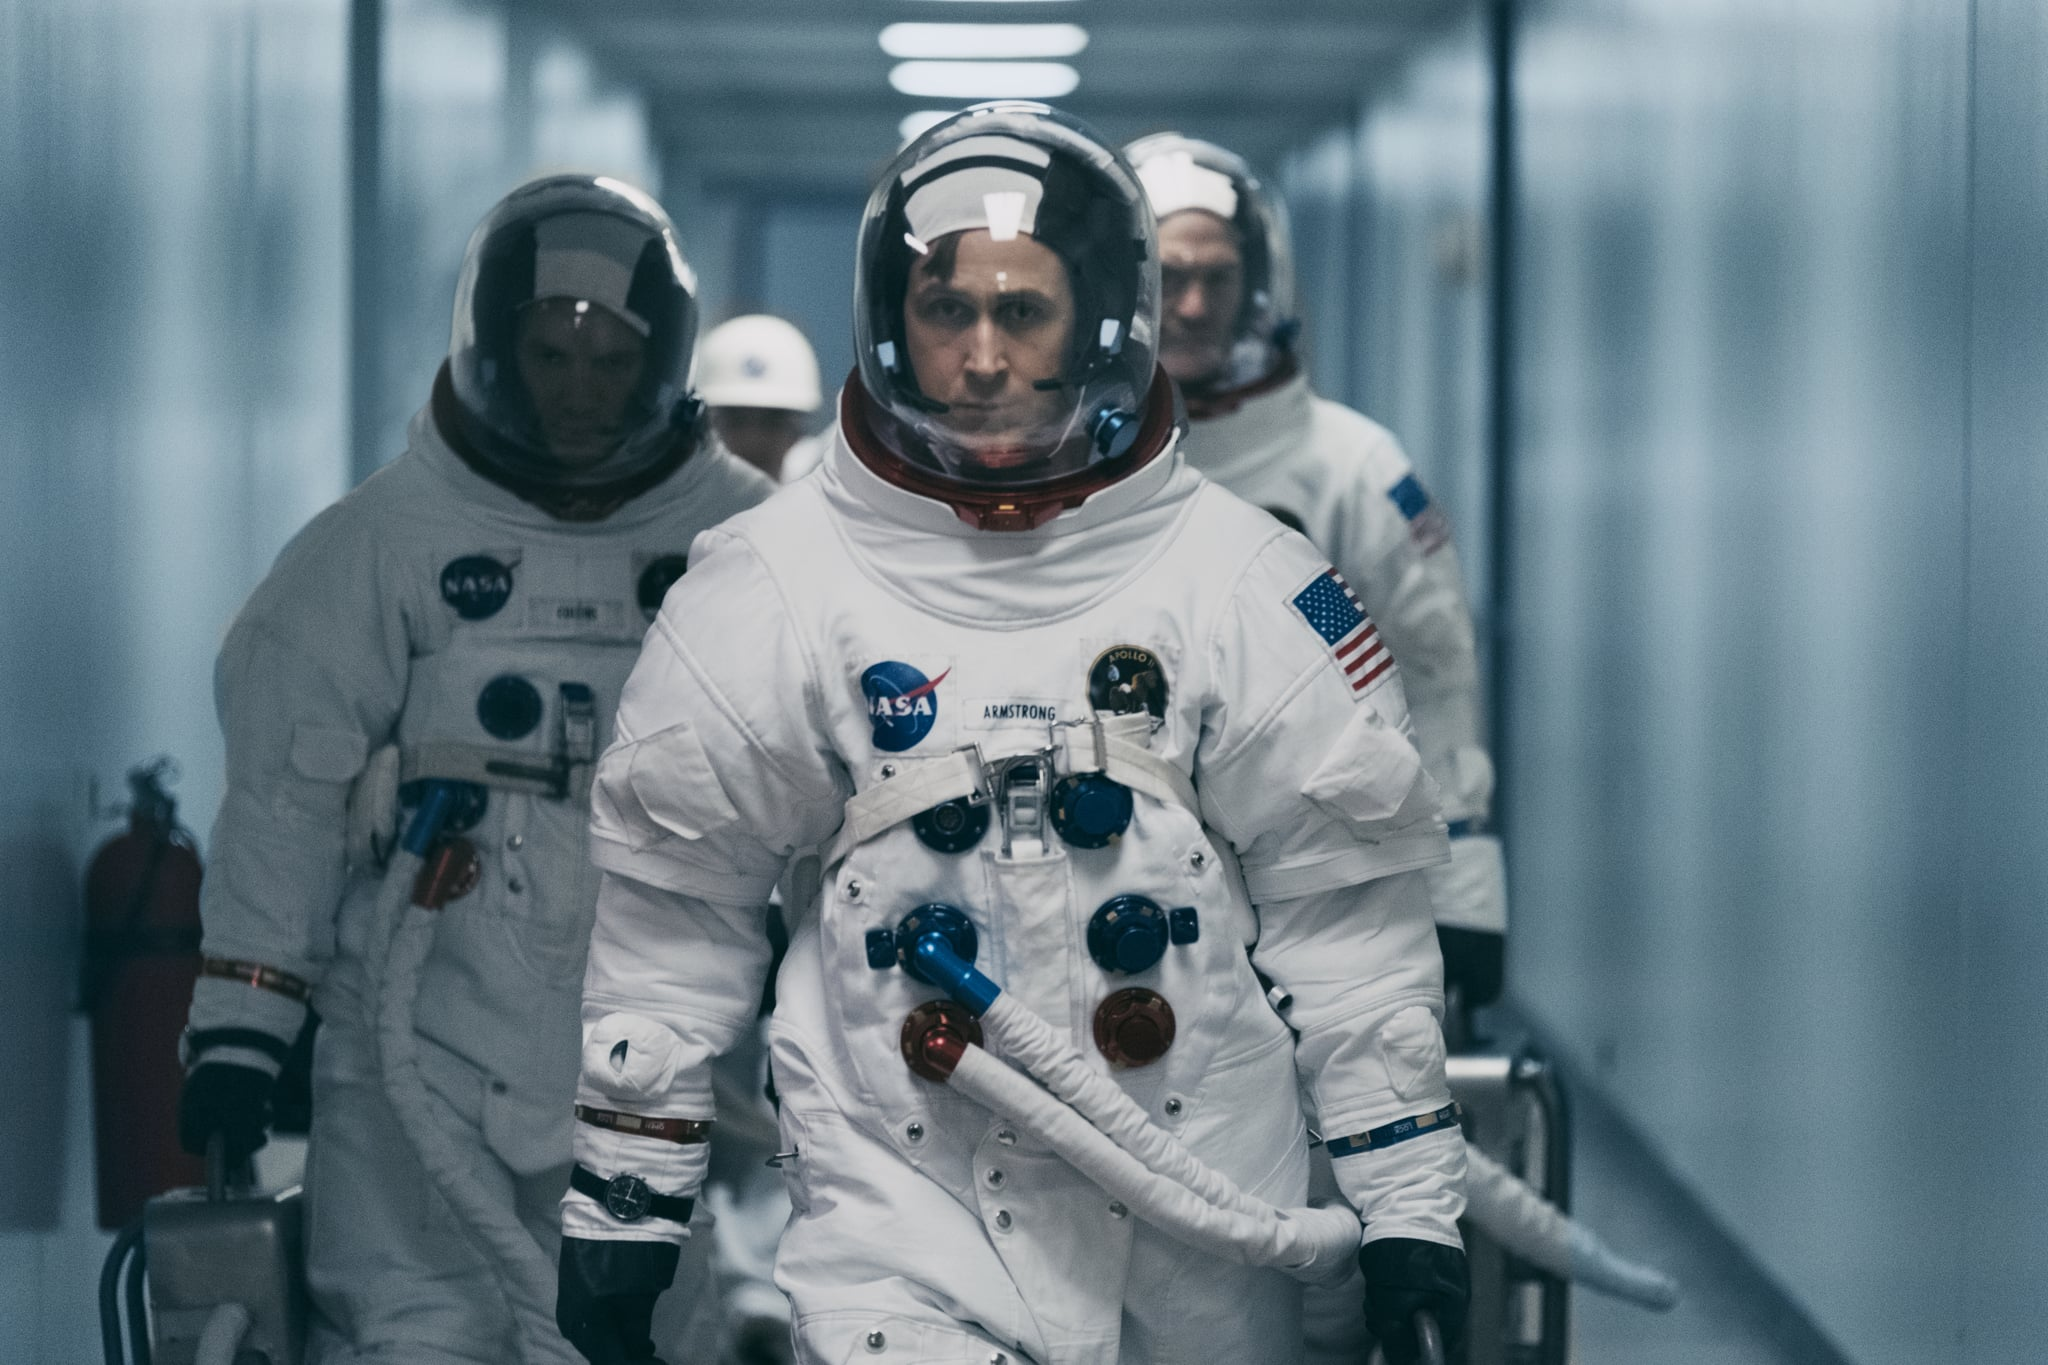 (L to R) LUKAS HAAS as Mike Collins, RYAN GOSLING as Neil Armstrong and COREY STOLL as Buzz Aldrin in